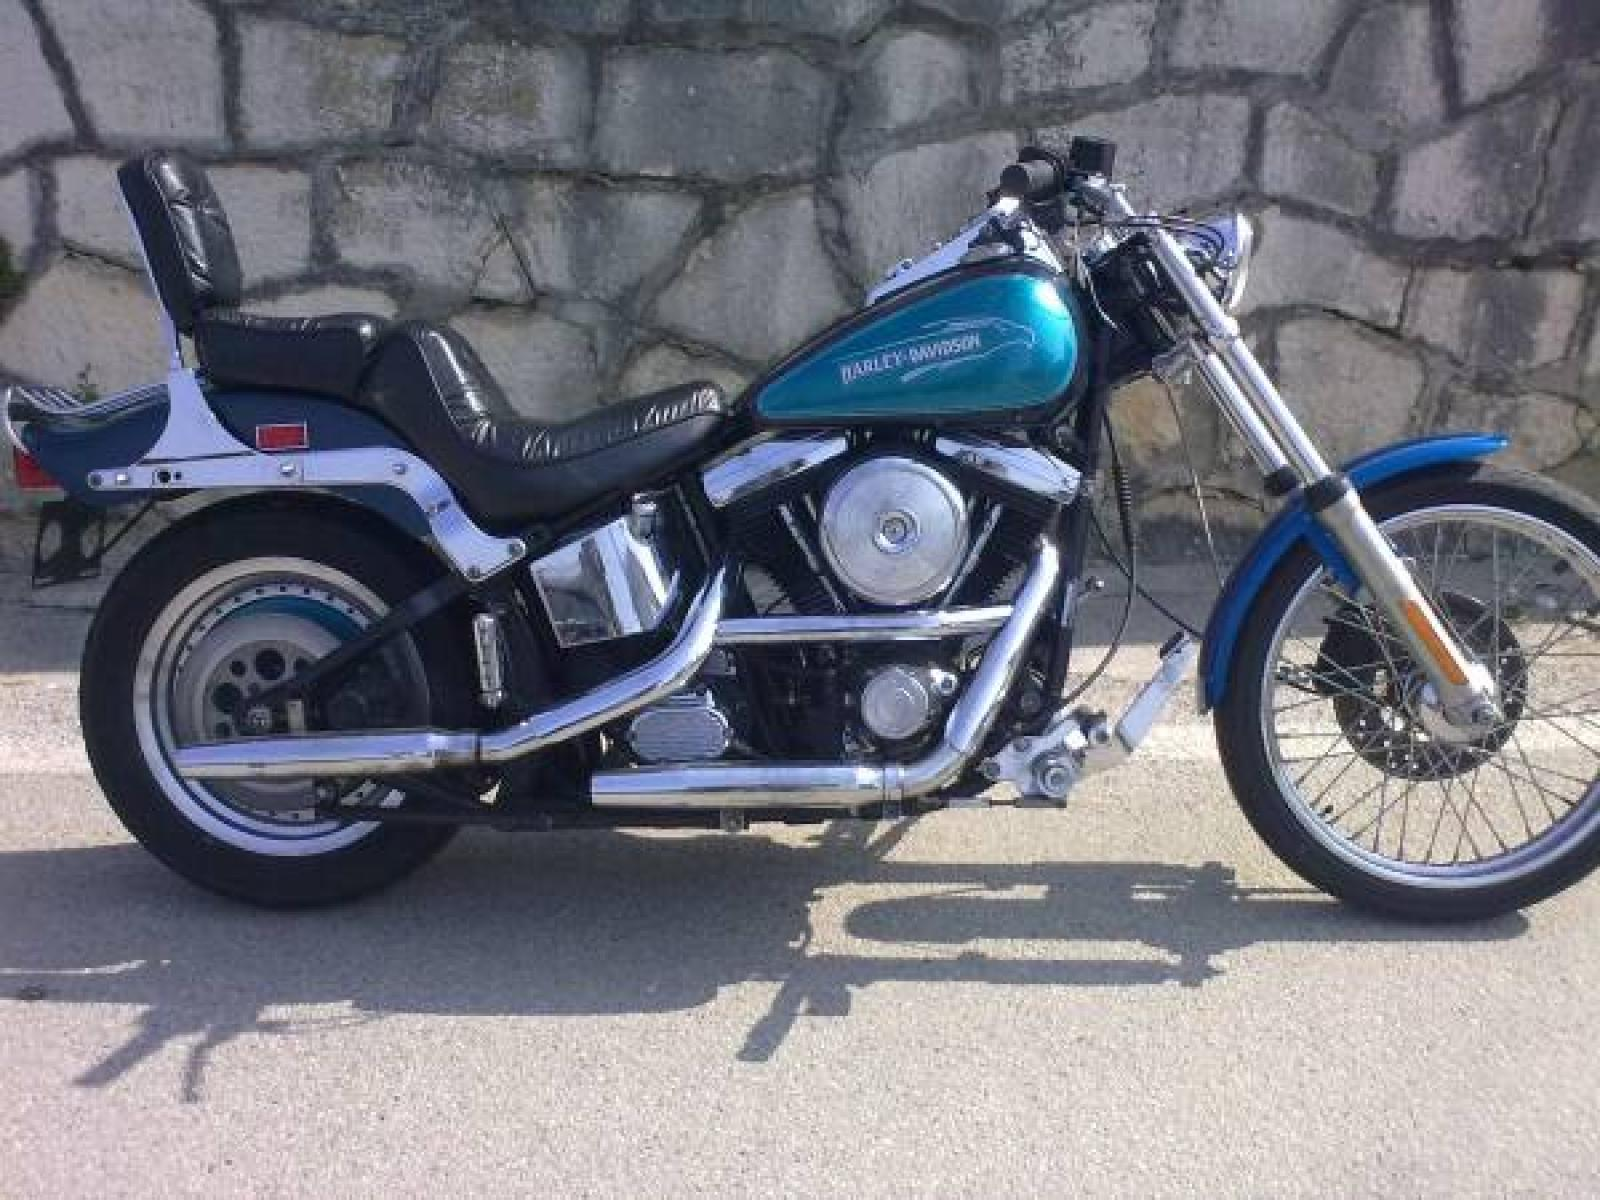 Harleydavidson Fxstc Softail Custom on harley fxstc